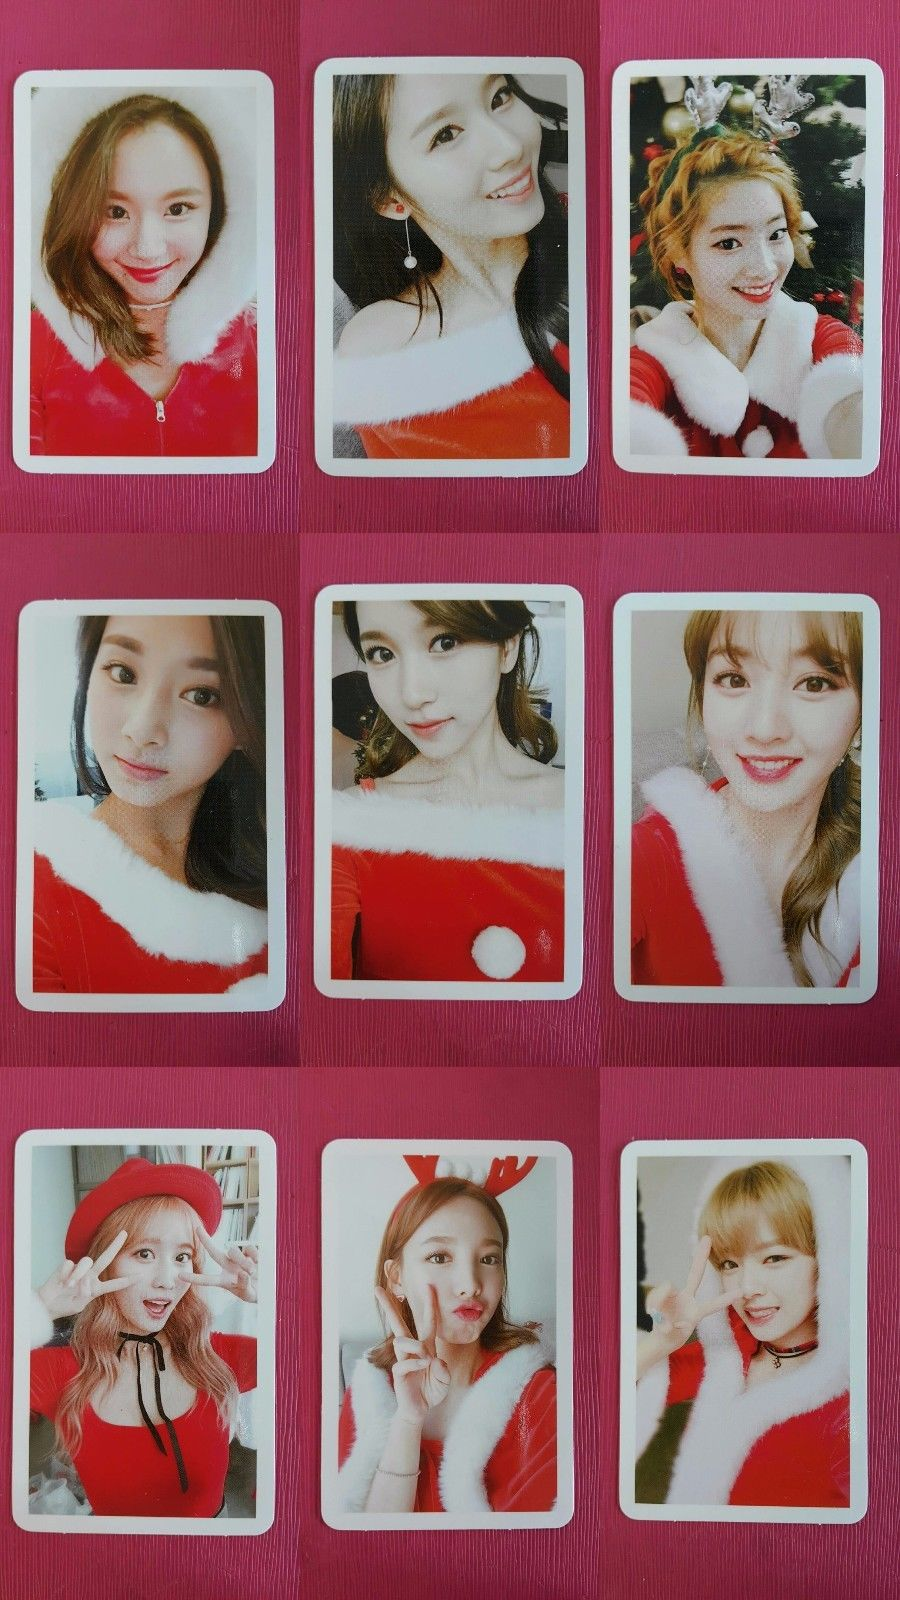 11 TWICE SKOOLOOKS Mina Type-B Photo Card Official K-POP